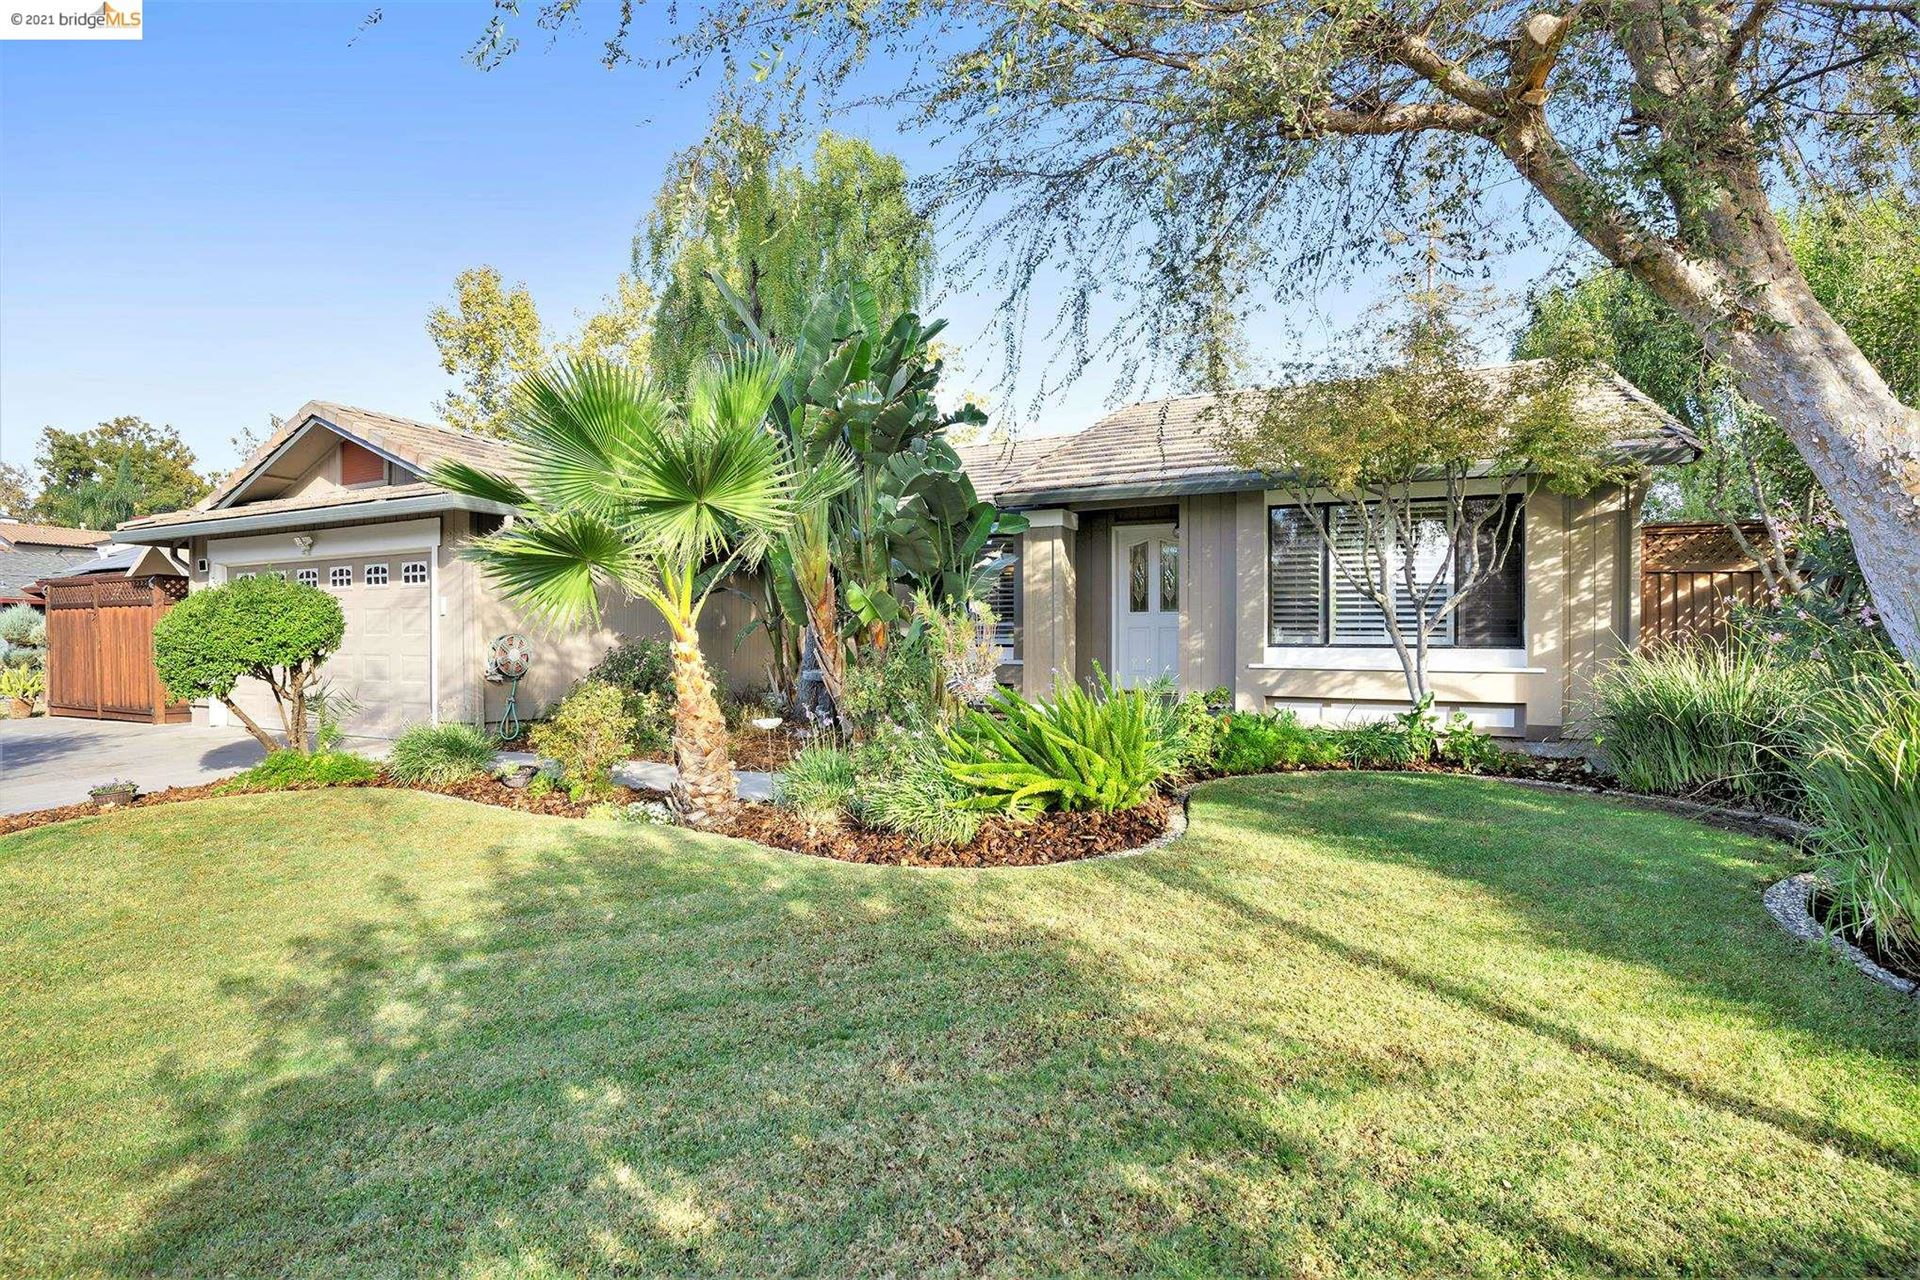 Photo of 283 Madrone Pl, Brentwood, CA 94513 (MLS # 40970506)